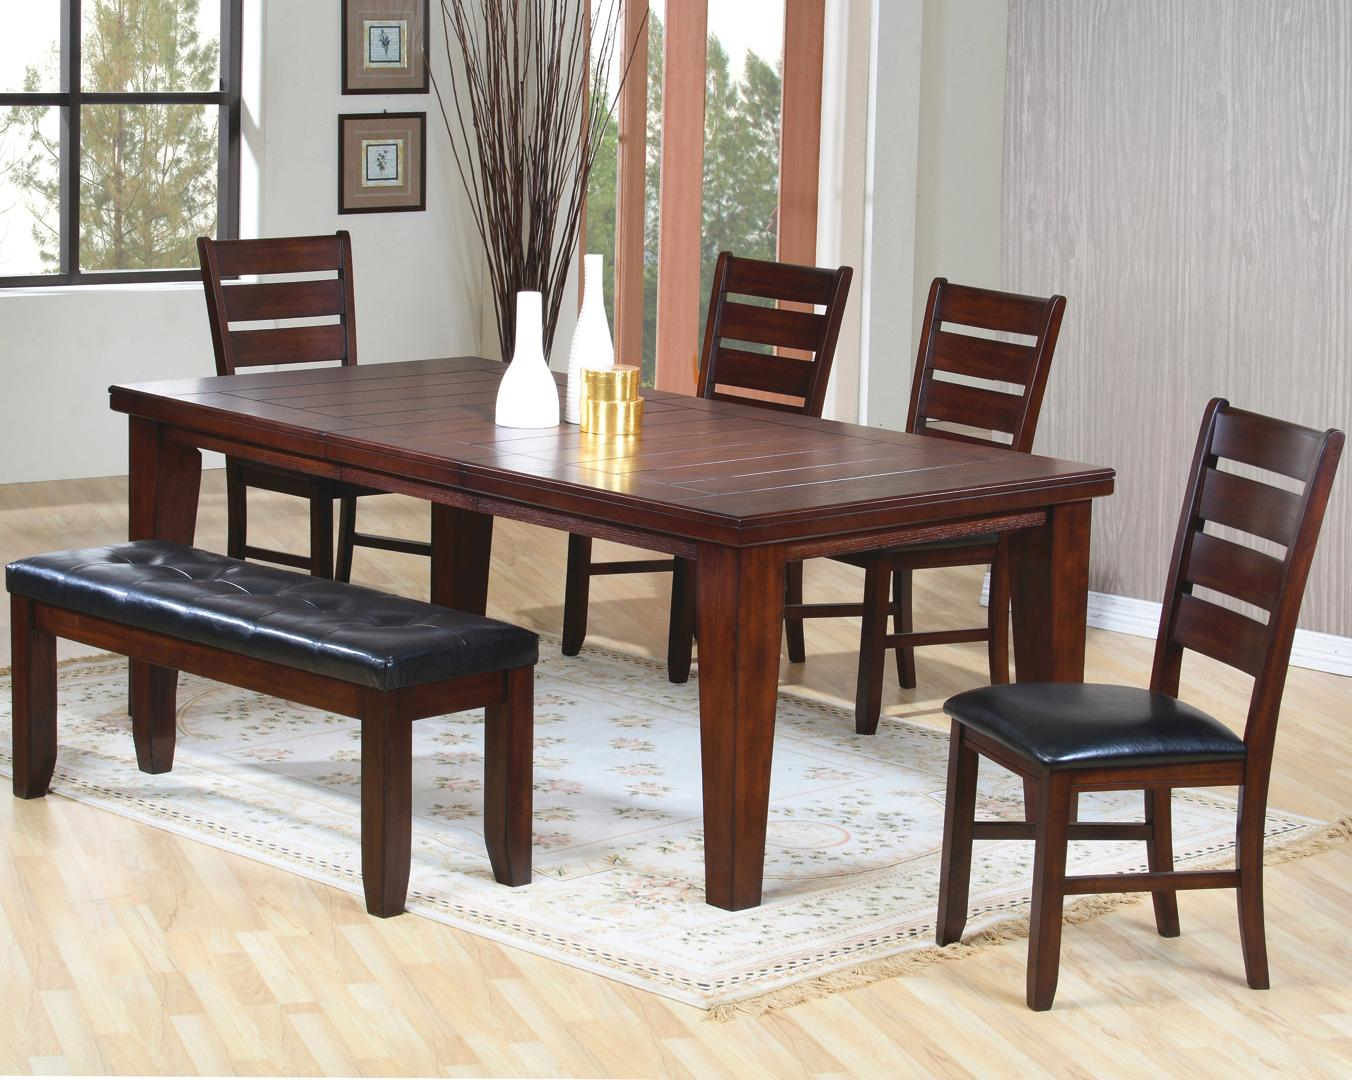 76a36bbfd1f71 Imperial 6 Piece Dining Set